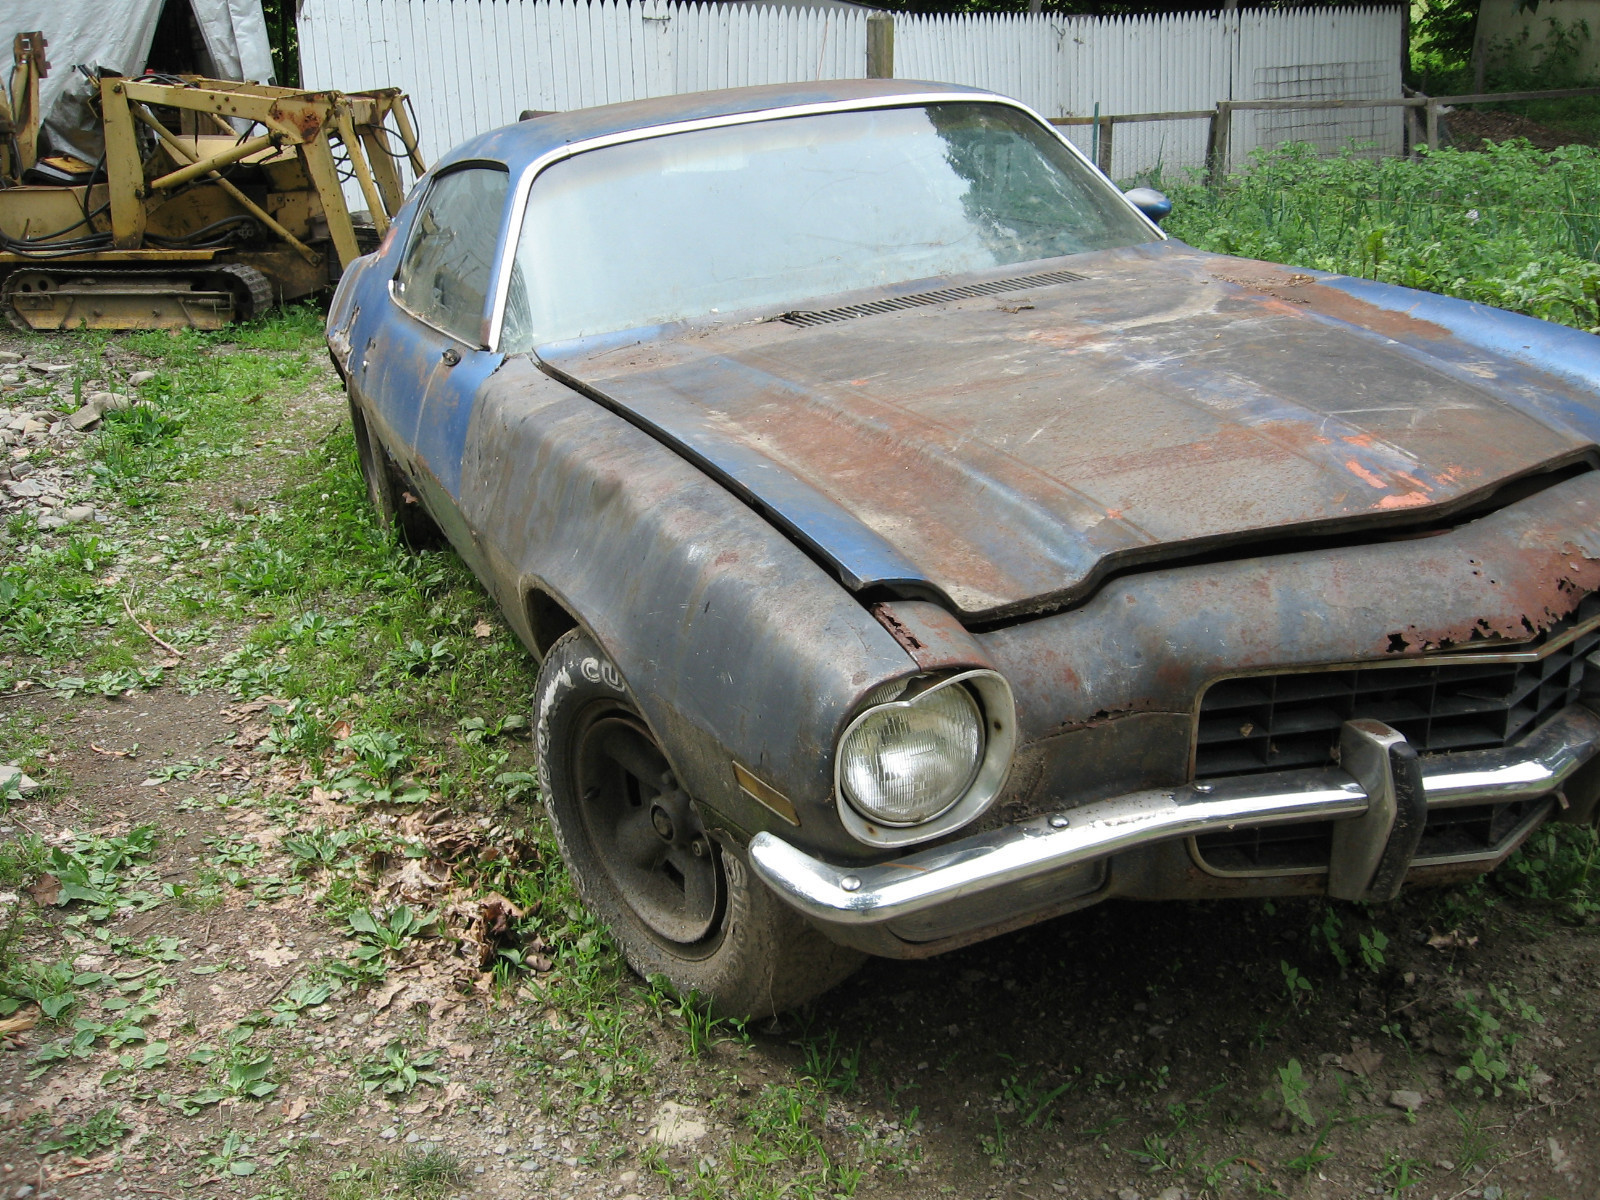 1970 73 Camaro Project Cars For Sale Html Autos Post